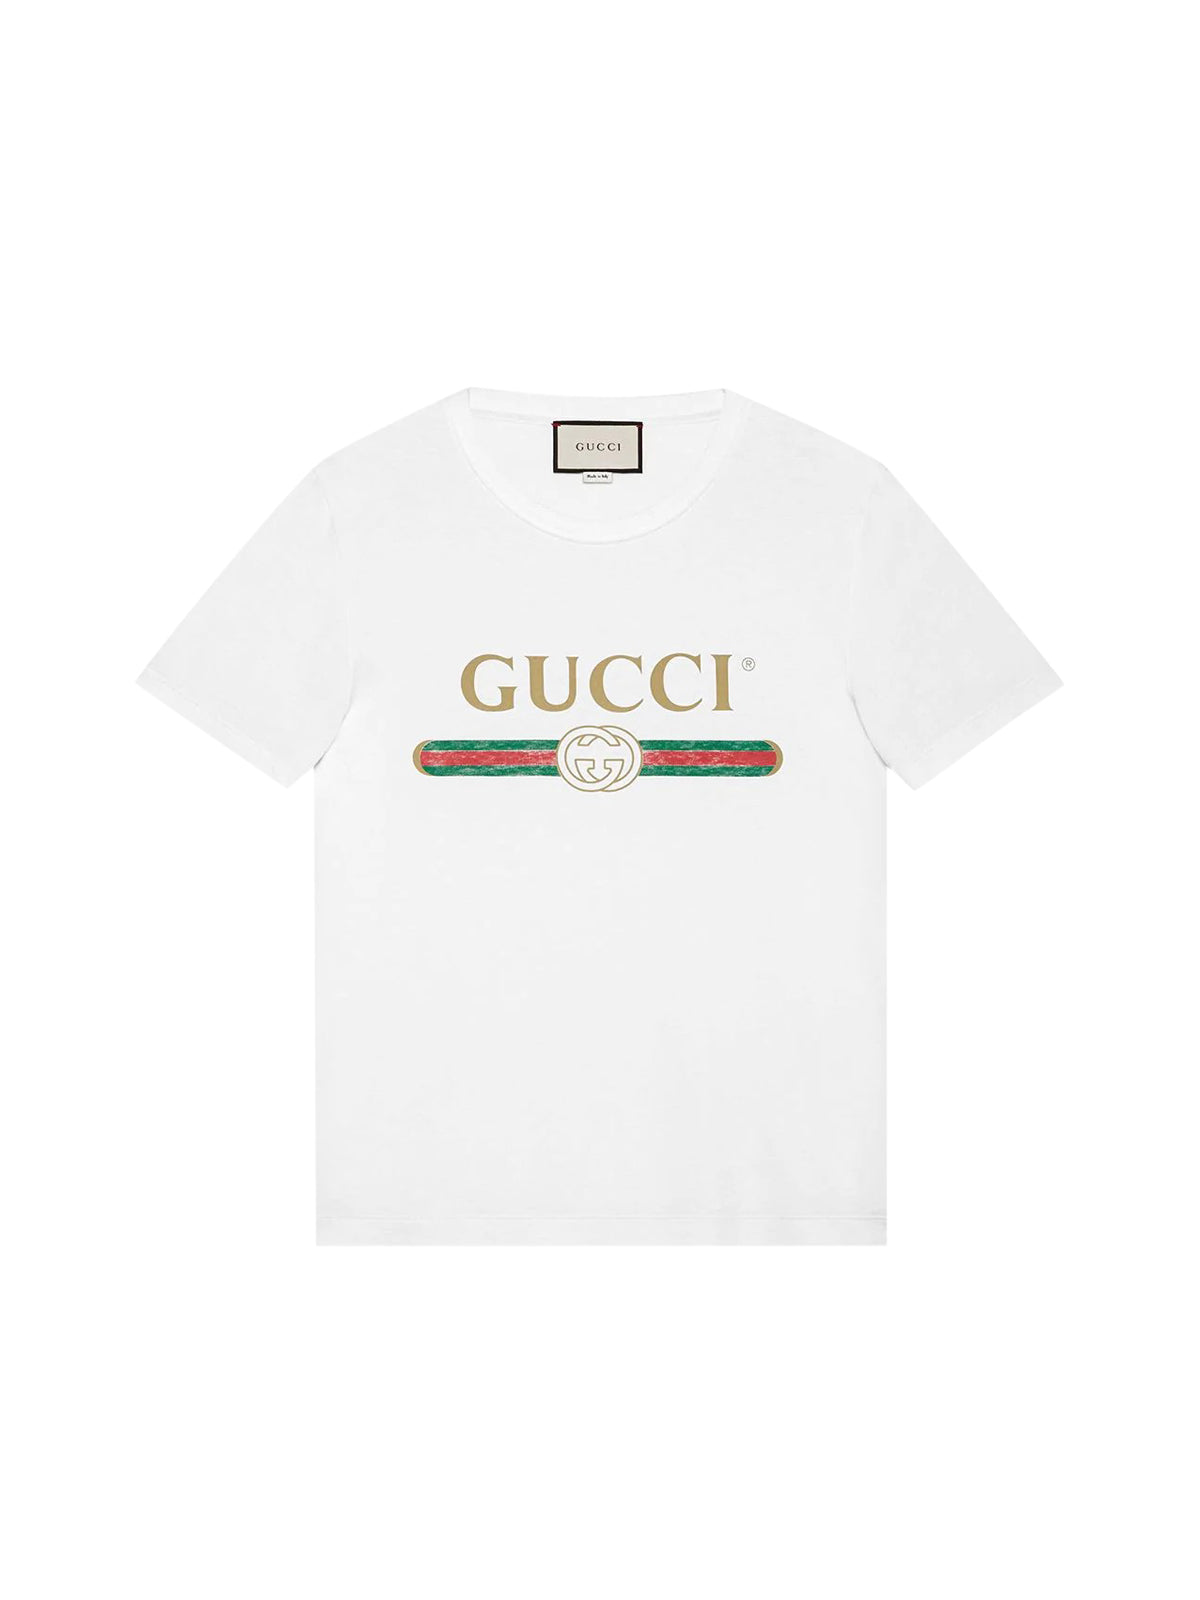 Gucci Print Washed T-shirt